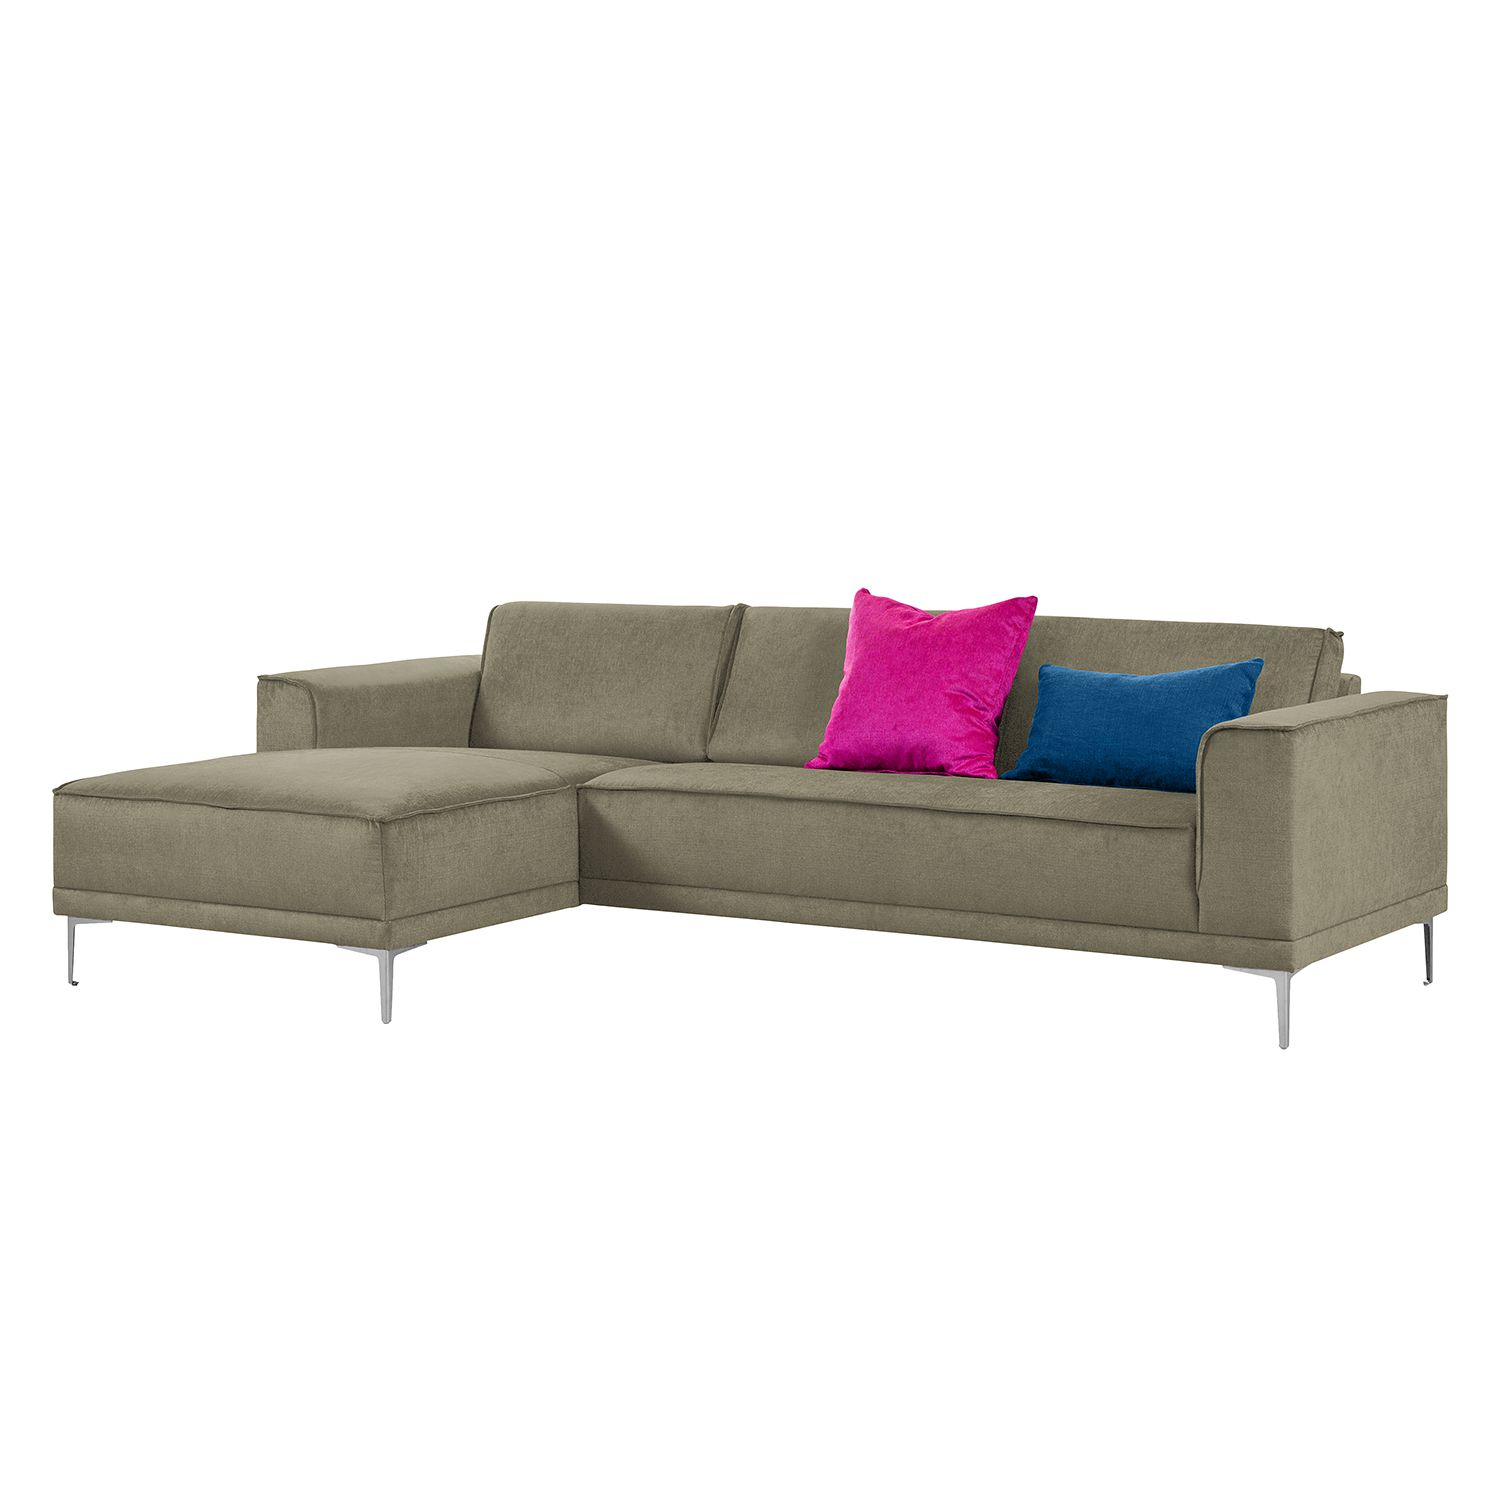 Ecksofa Grapefield - Webstoff - Longchair/Ottomane davorstehend links - Taupe, Says Who